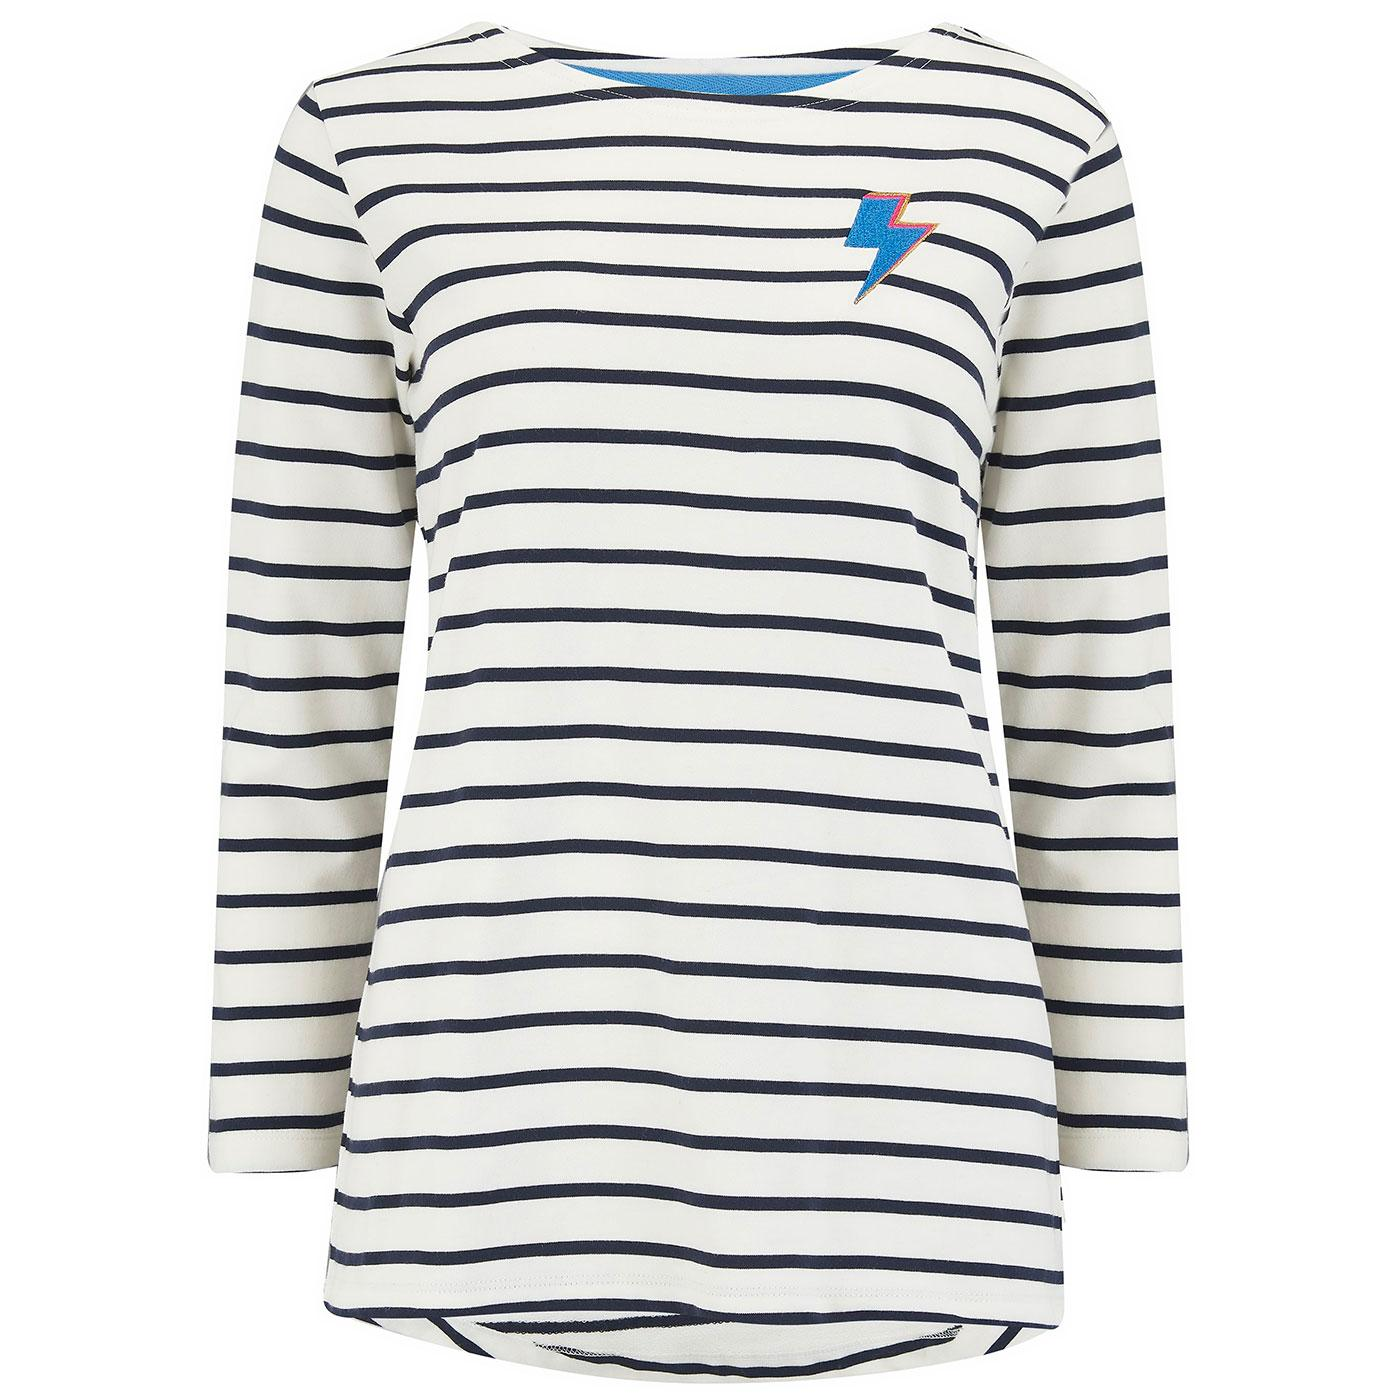 Brighton Thunderstruck SUGARHILL Retro Breton Top